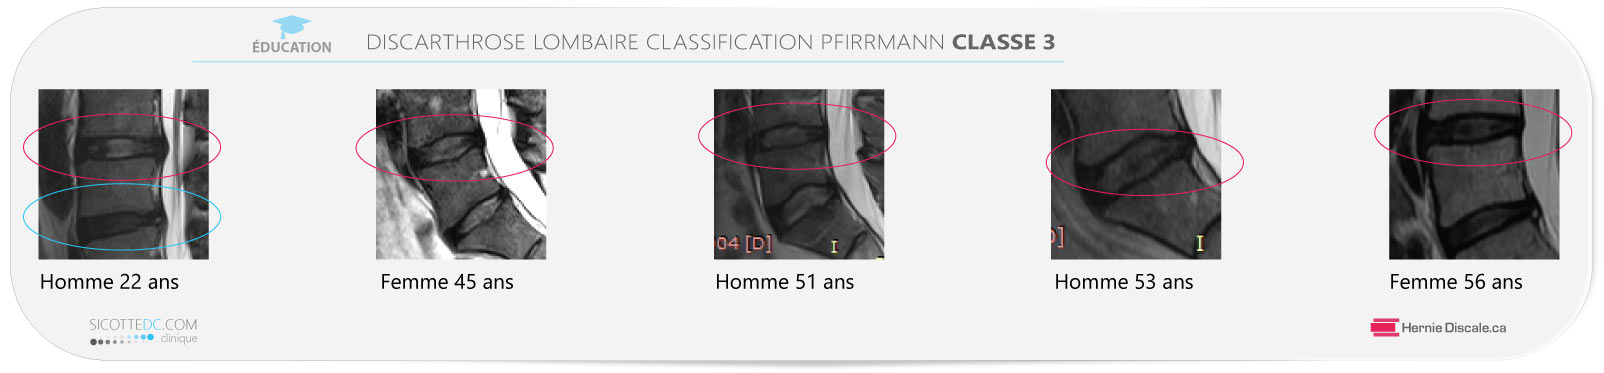 Example discarthrose lombaire classification Pfirrmann classe 3